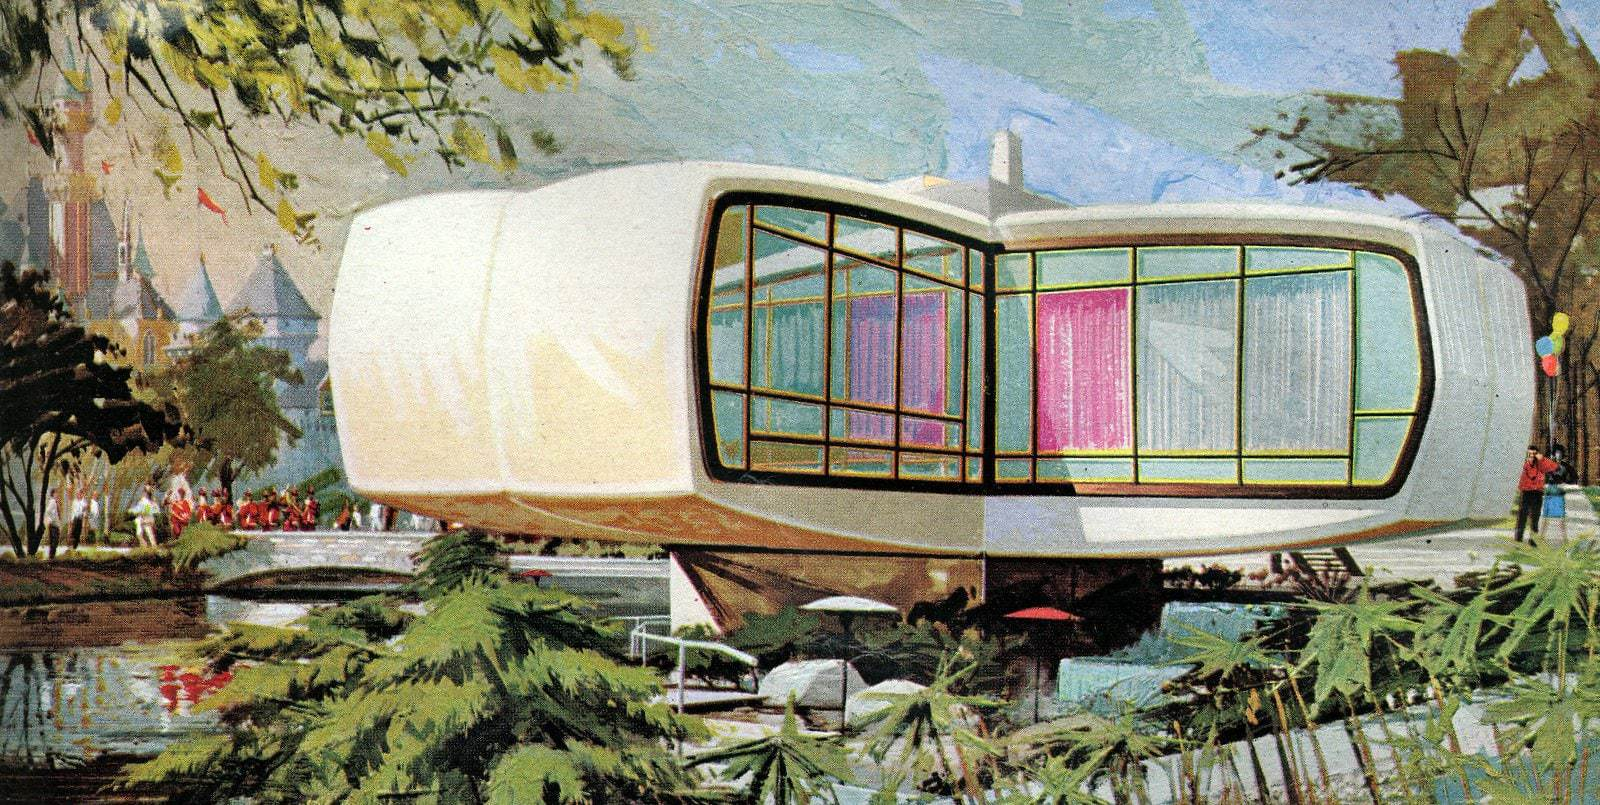 The retro-modern space-age Monsanto Home of the Future at Disneyland (1)